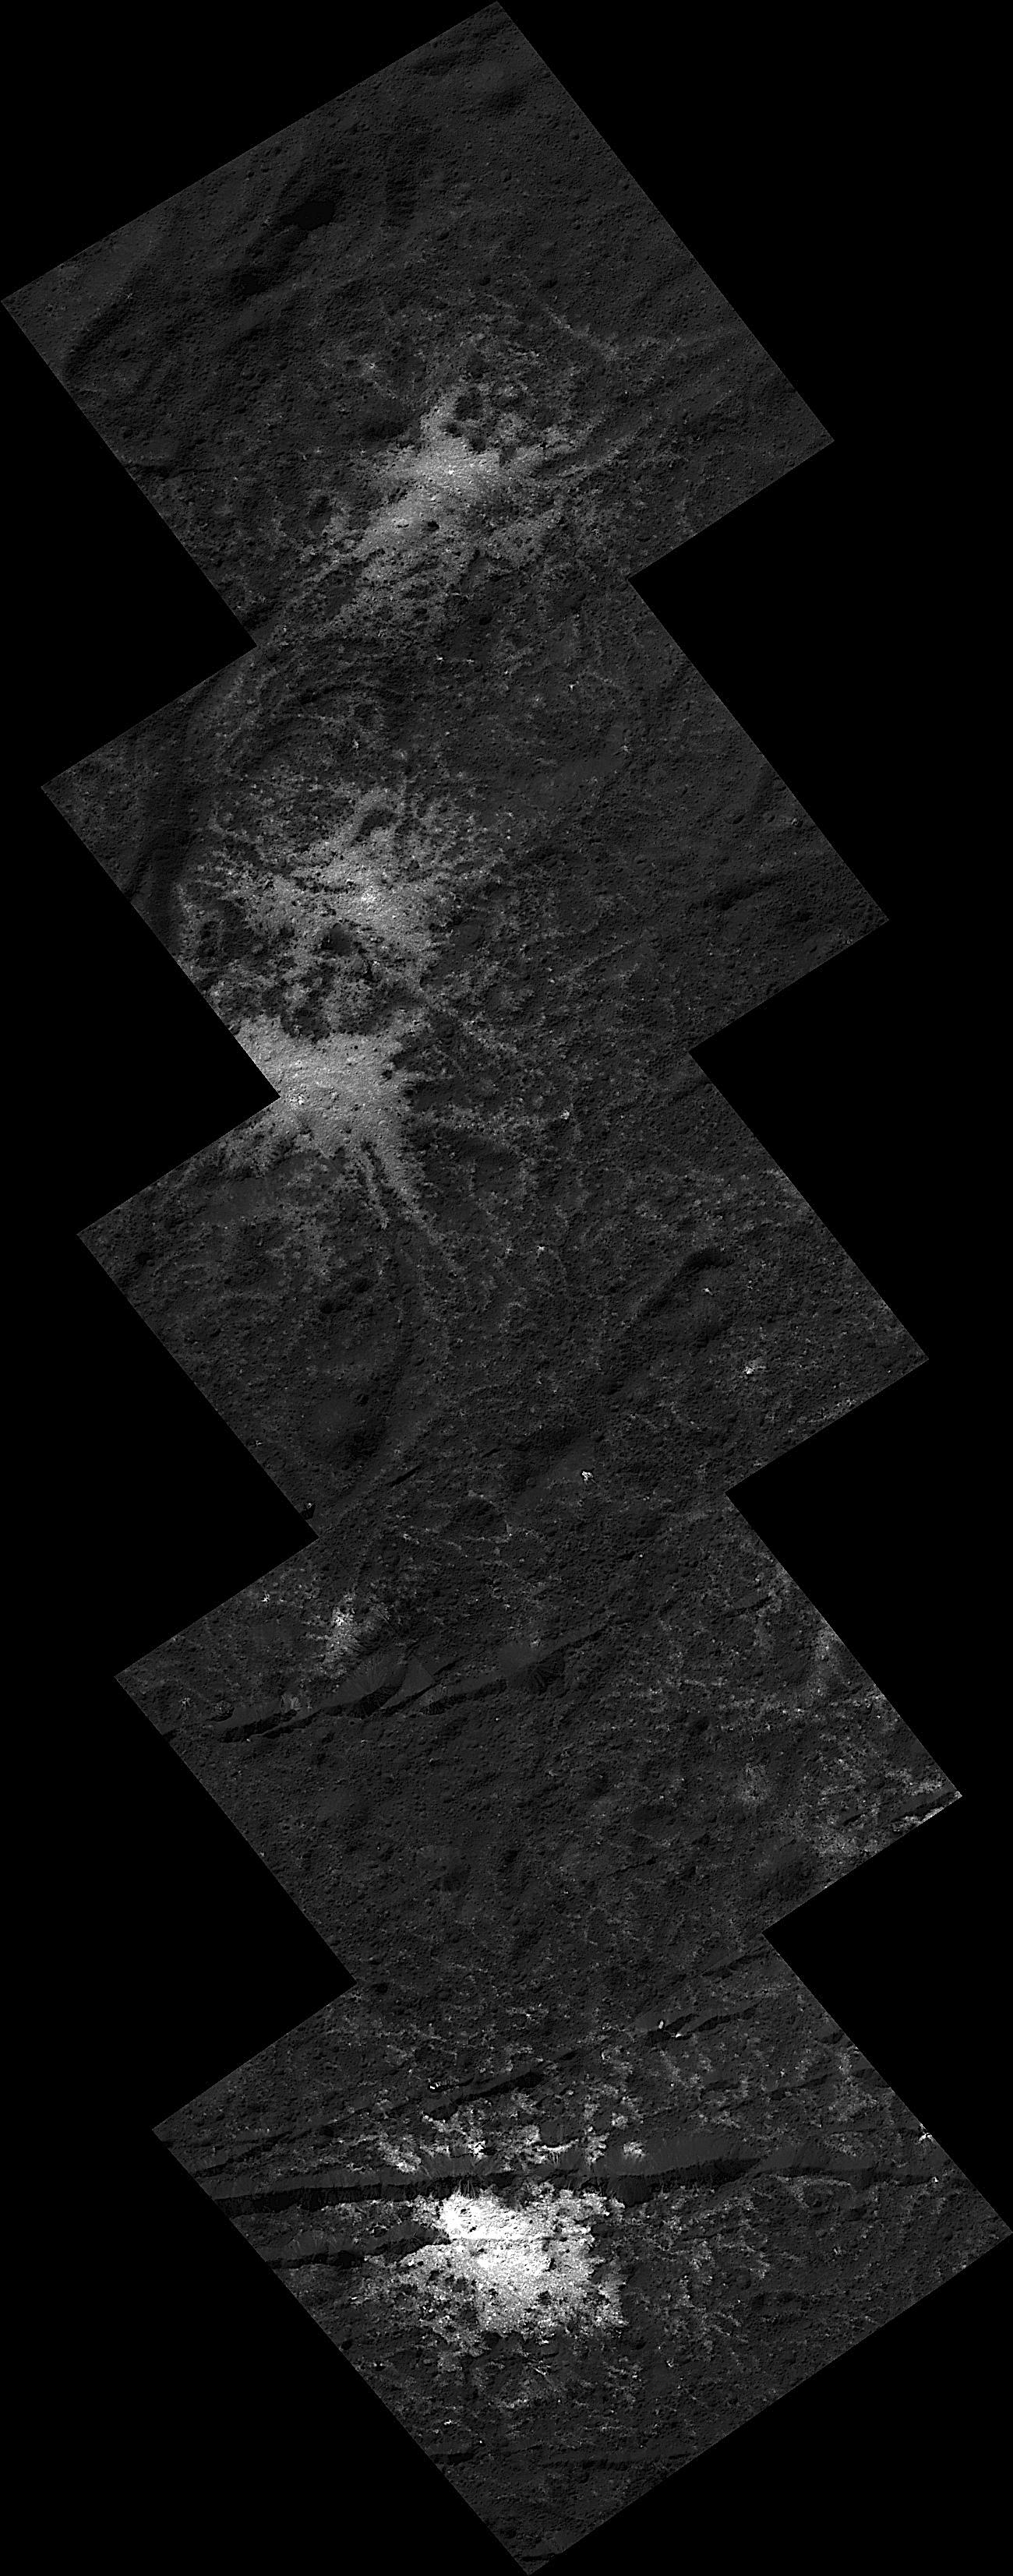 This image montage of stars found on the floor of Ceres Occator Crater was obtained by NASAs Dawn spacecraft in June, 2018 from an altitude of about 21 miles (34 kilometers).